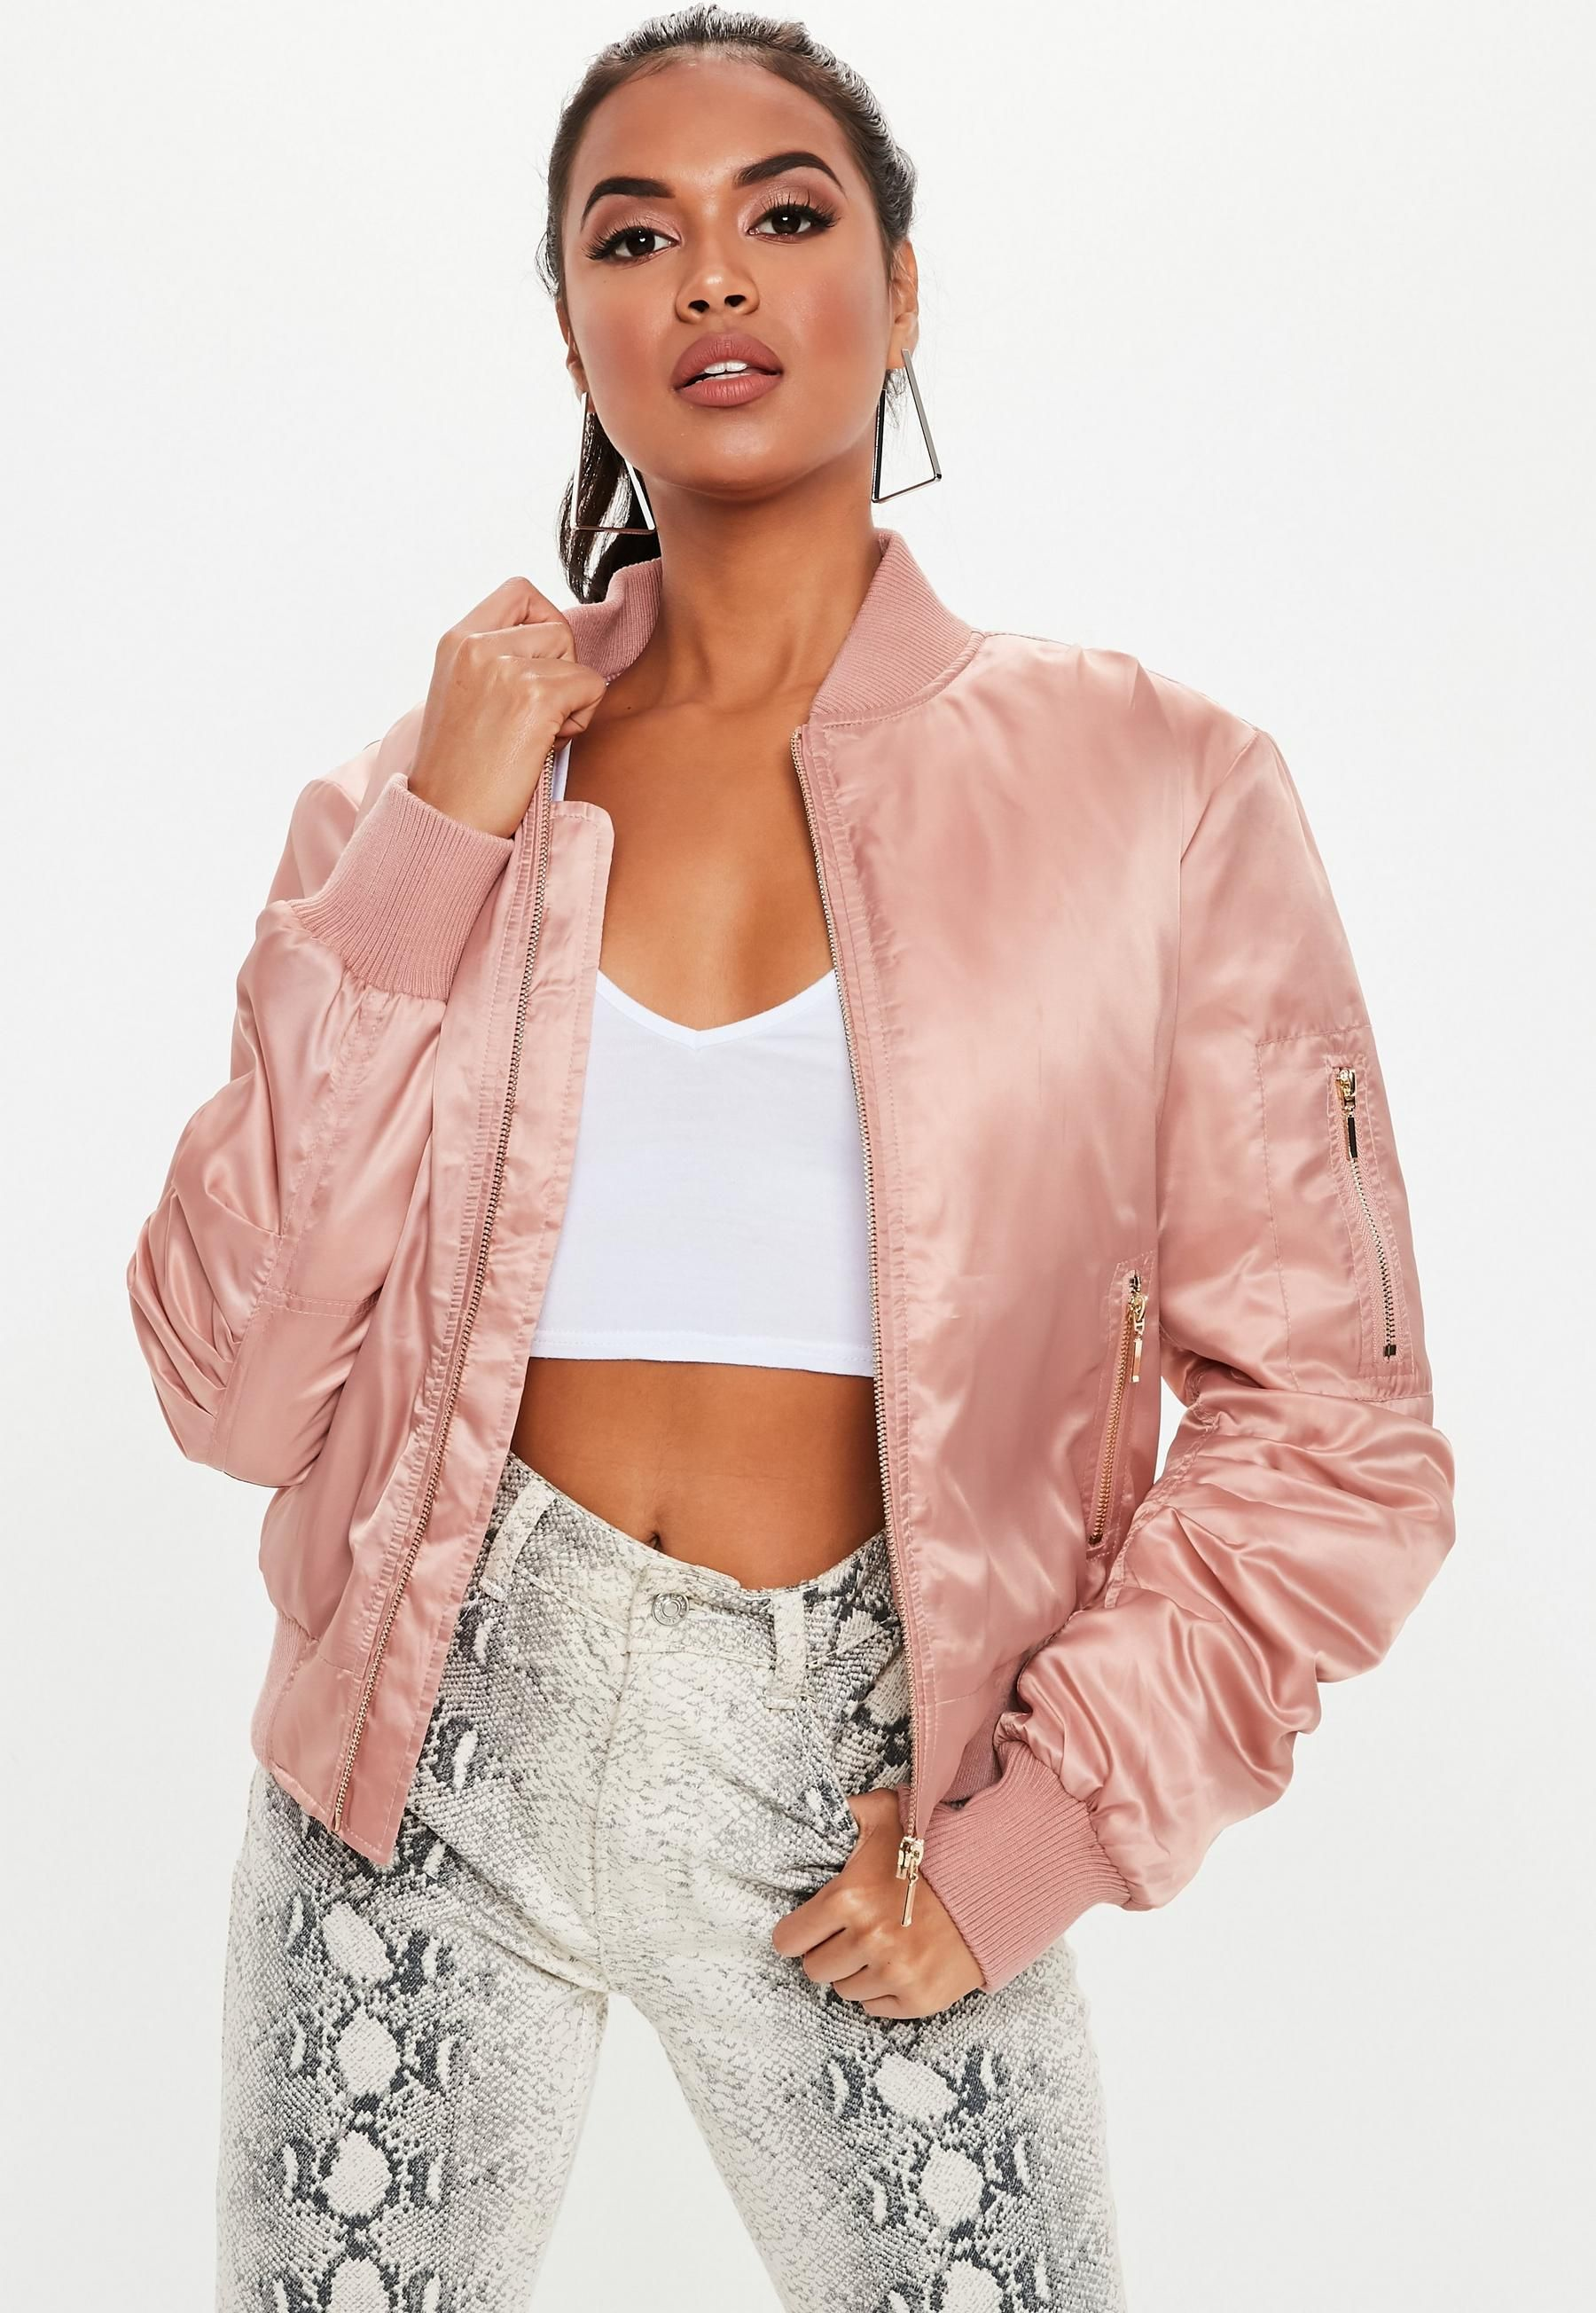 Pink Ultimate Ma1 Bomber Jacket Missguided Pink Bomber Jacket Bomber Jacket Coats Jackets Women [ 2608 x 1800 Pixel ]